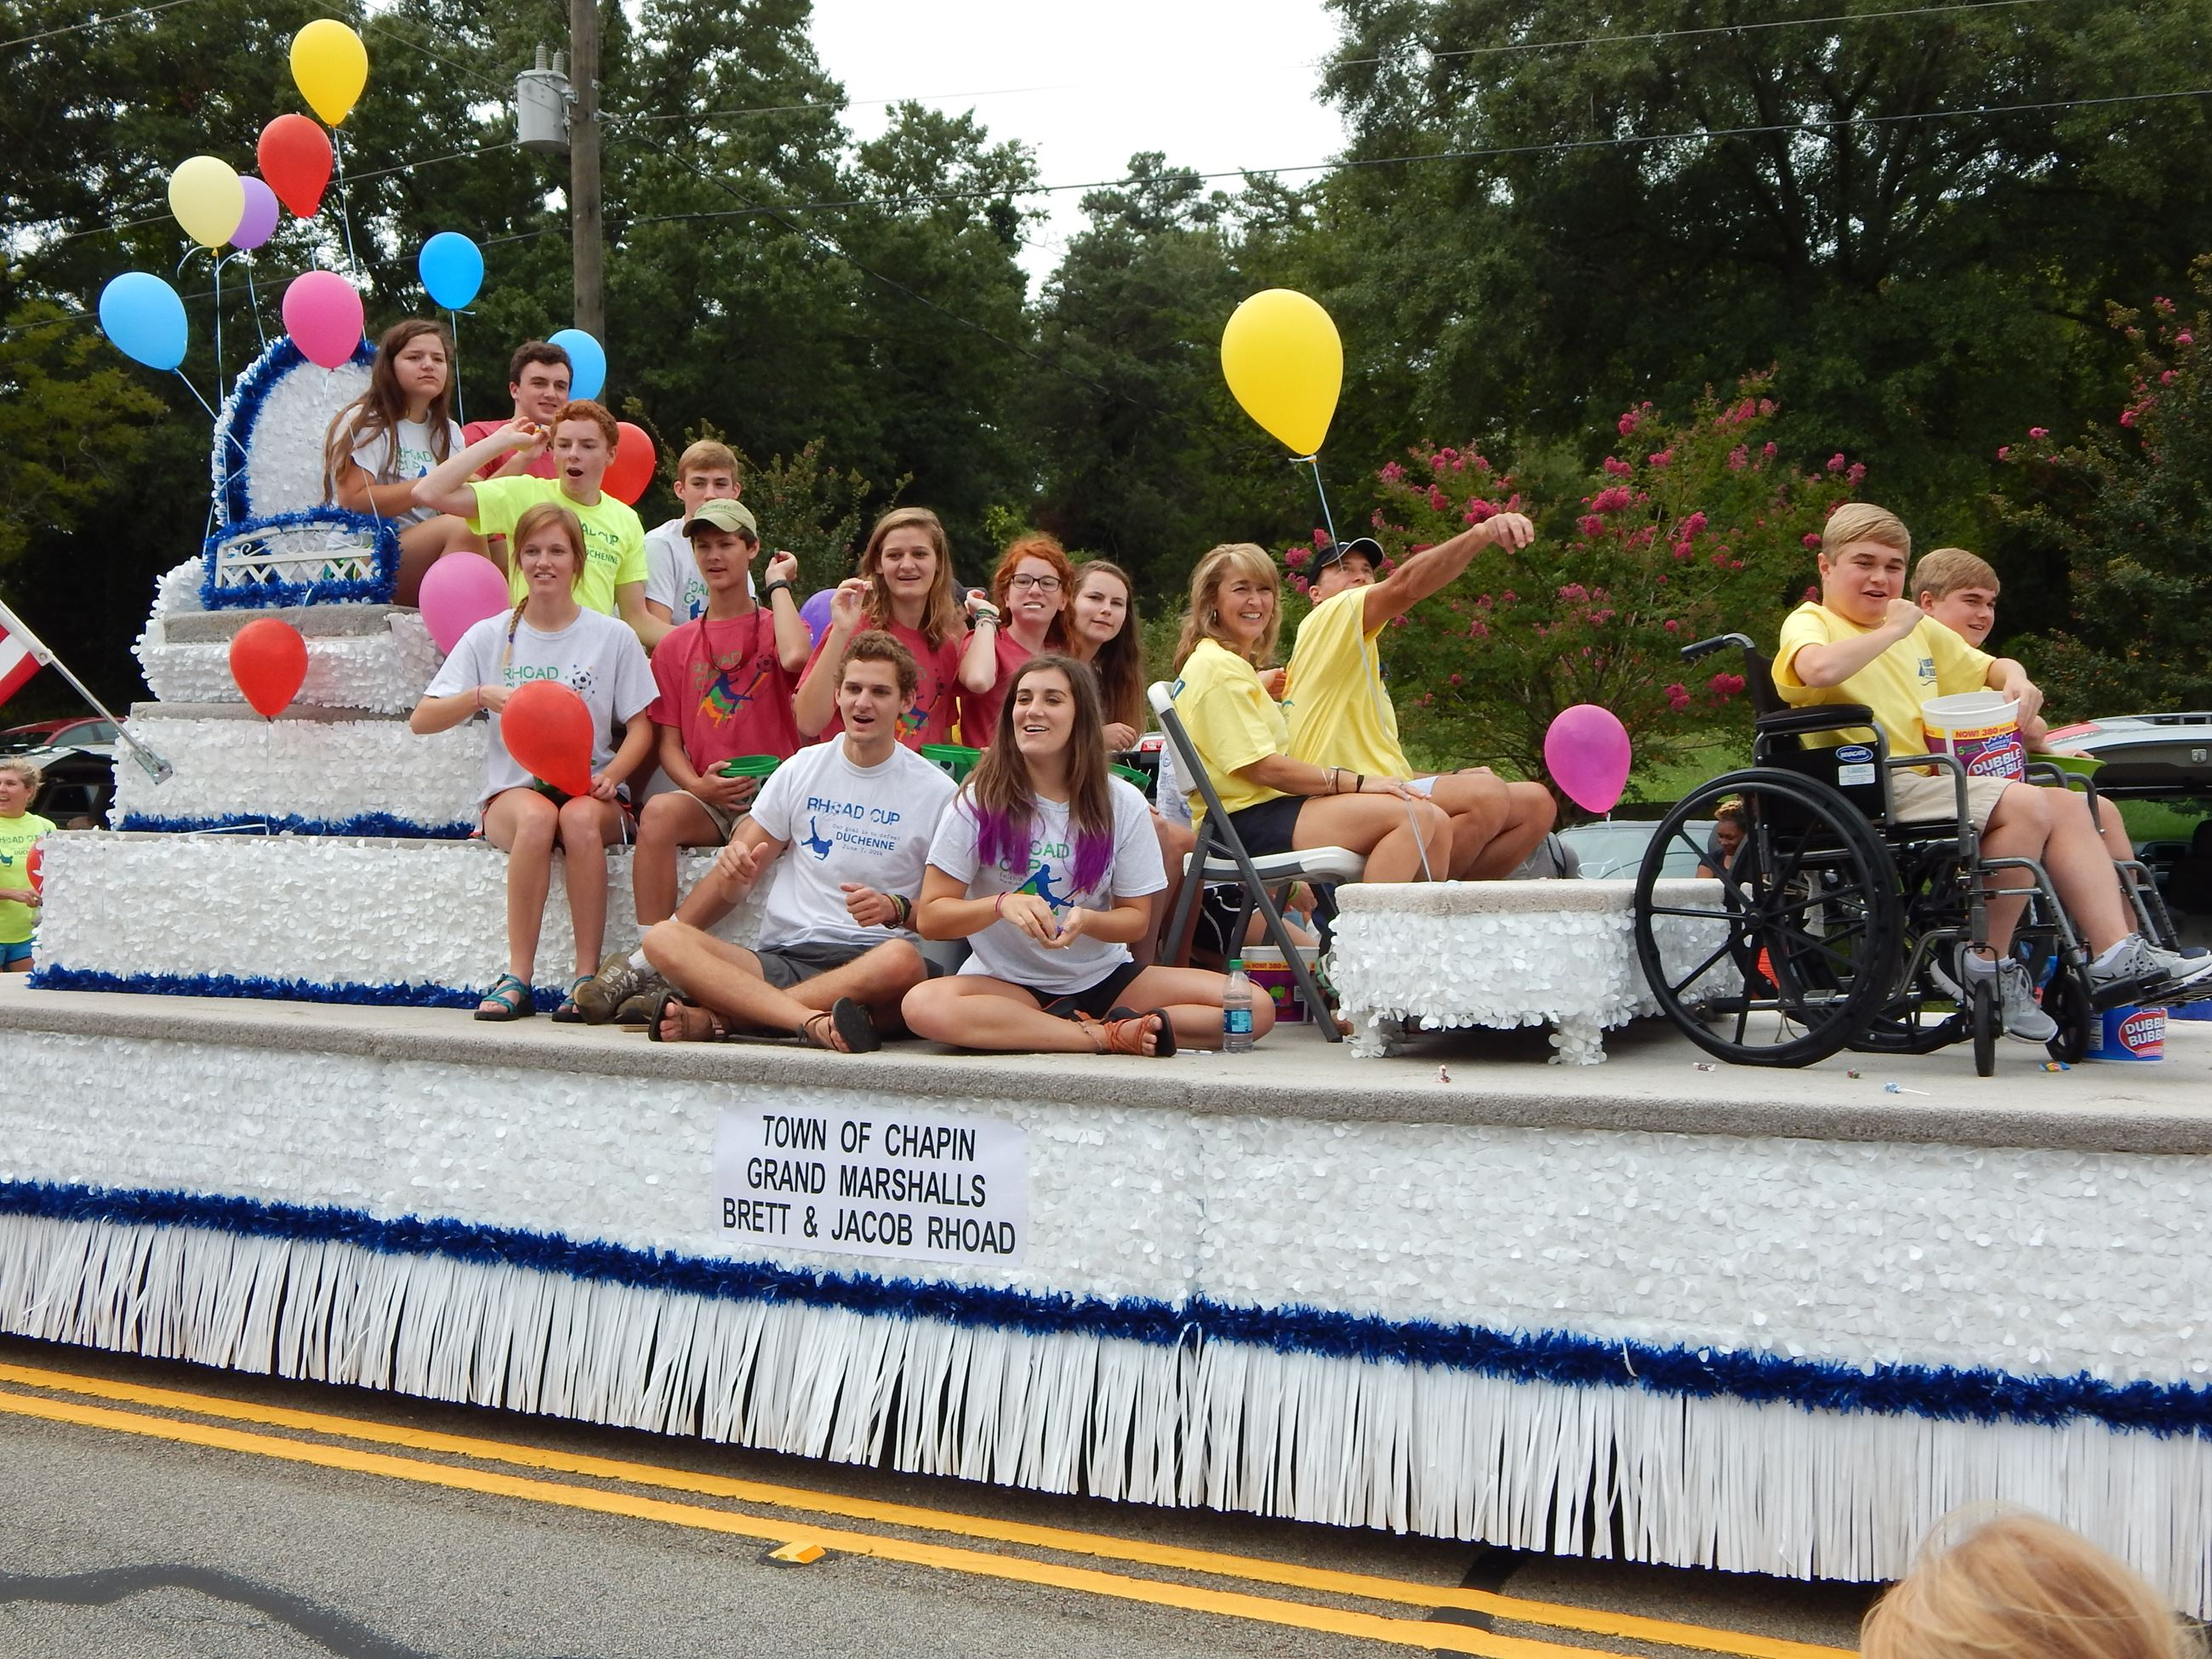 Young people riding on a parade float.